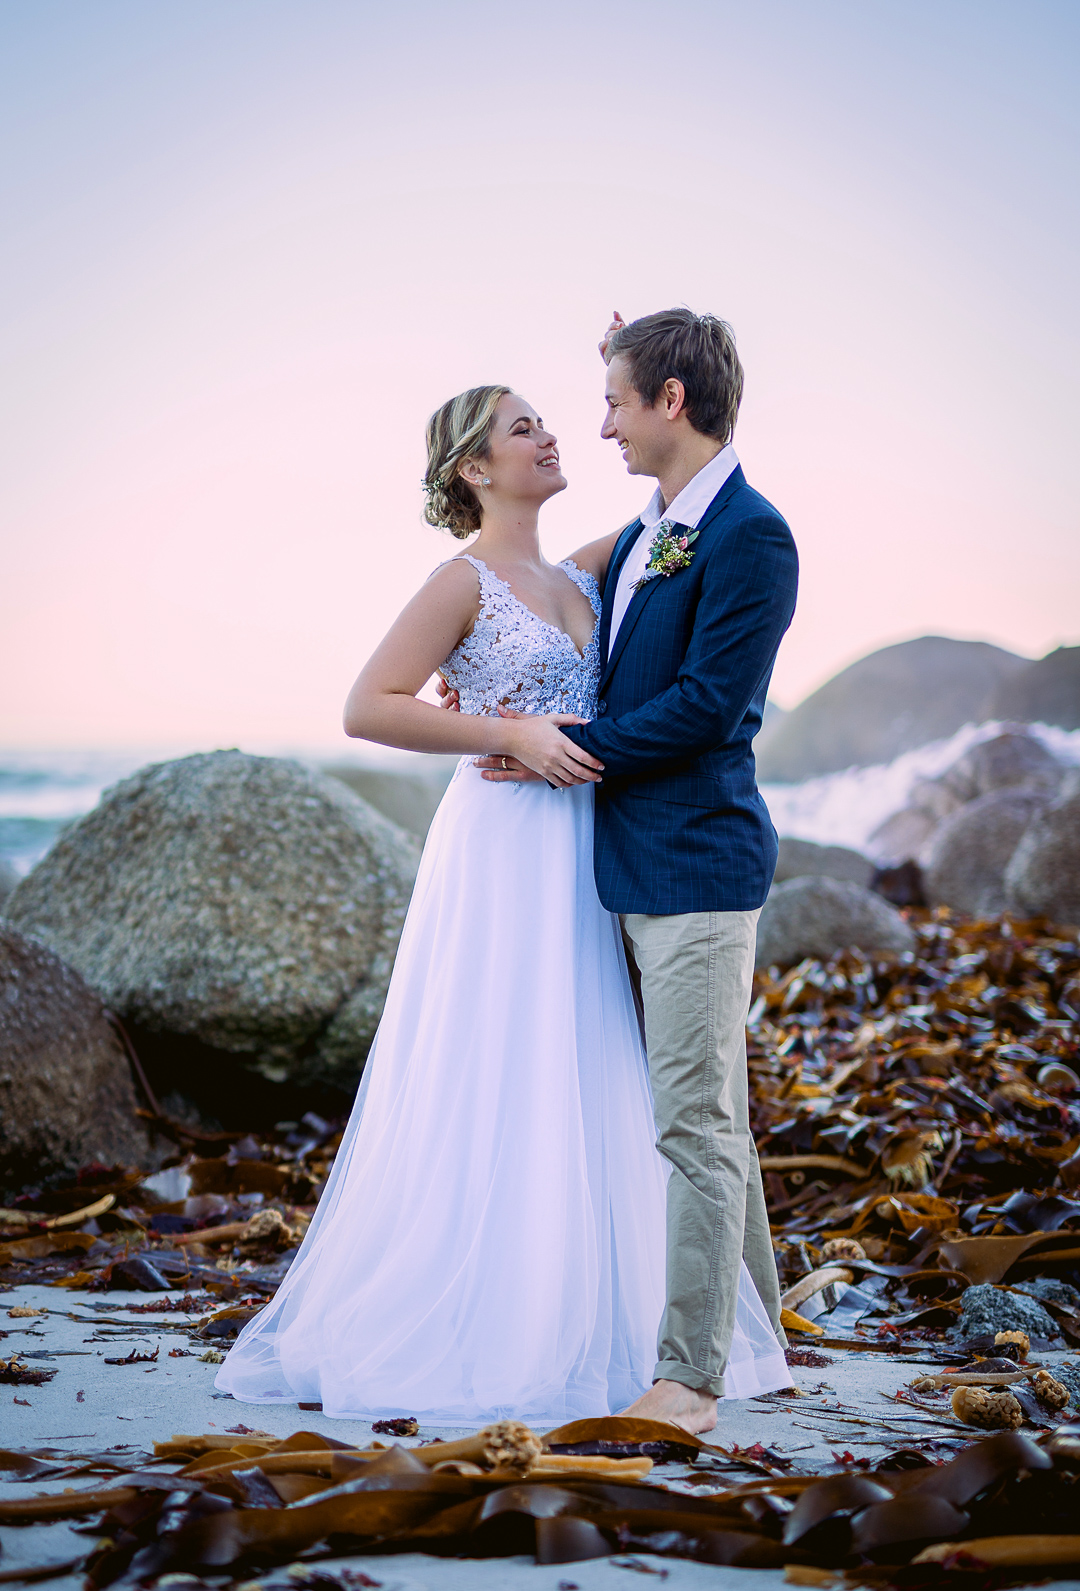 Elopement Photography Cape Town Clifton by Cape Image Co. (small file)-22.jpg